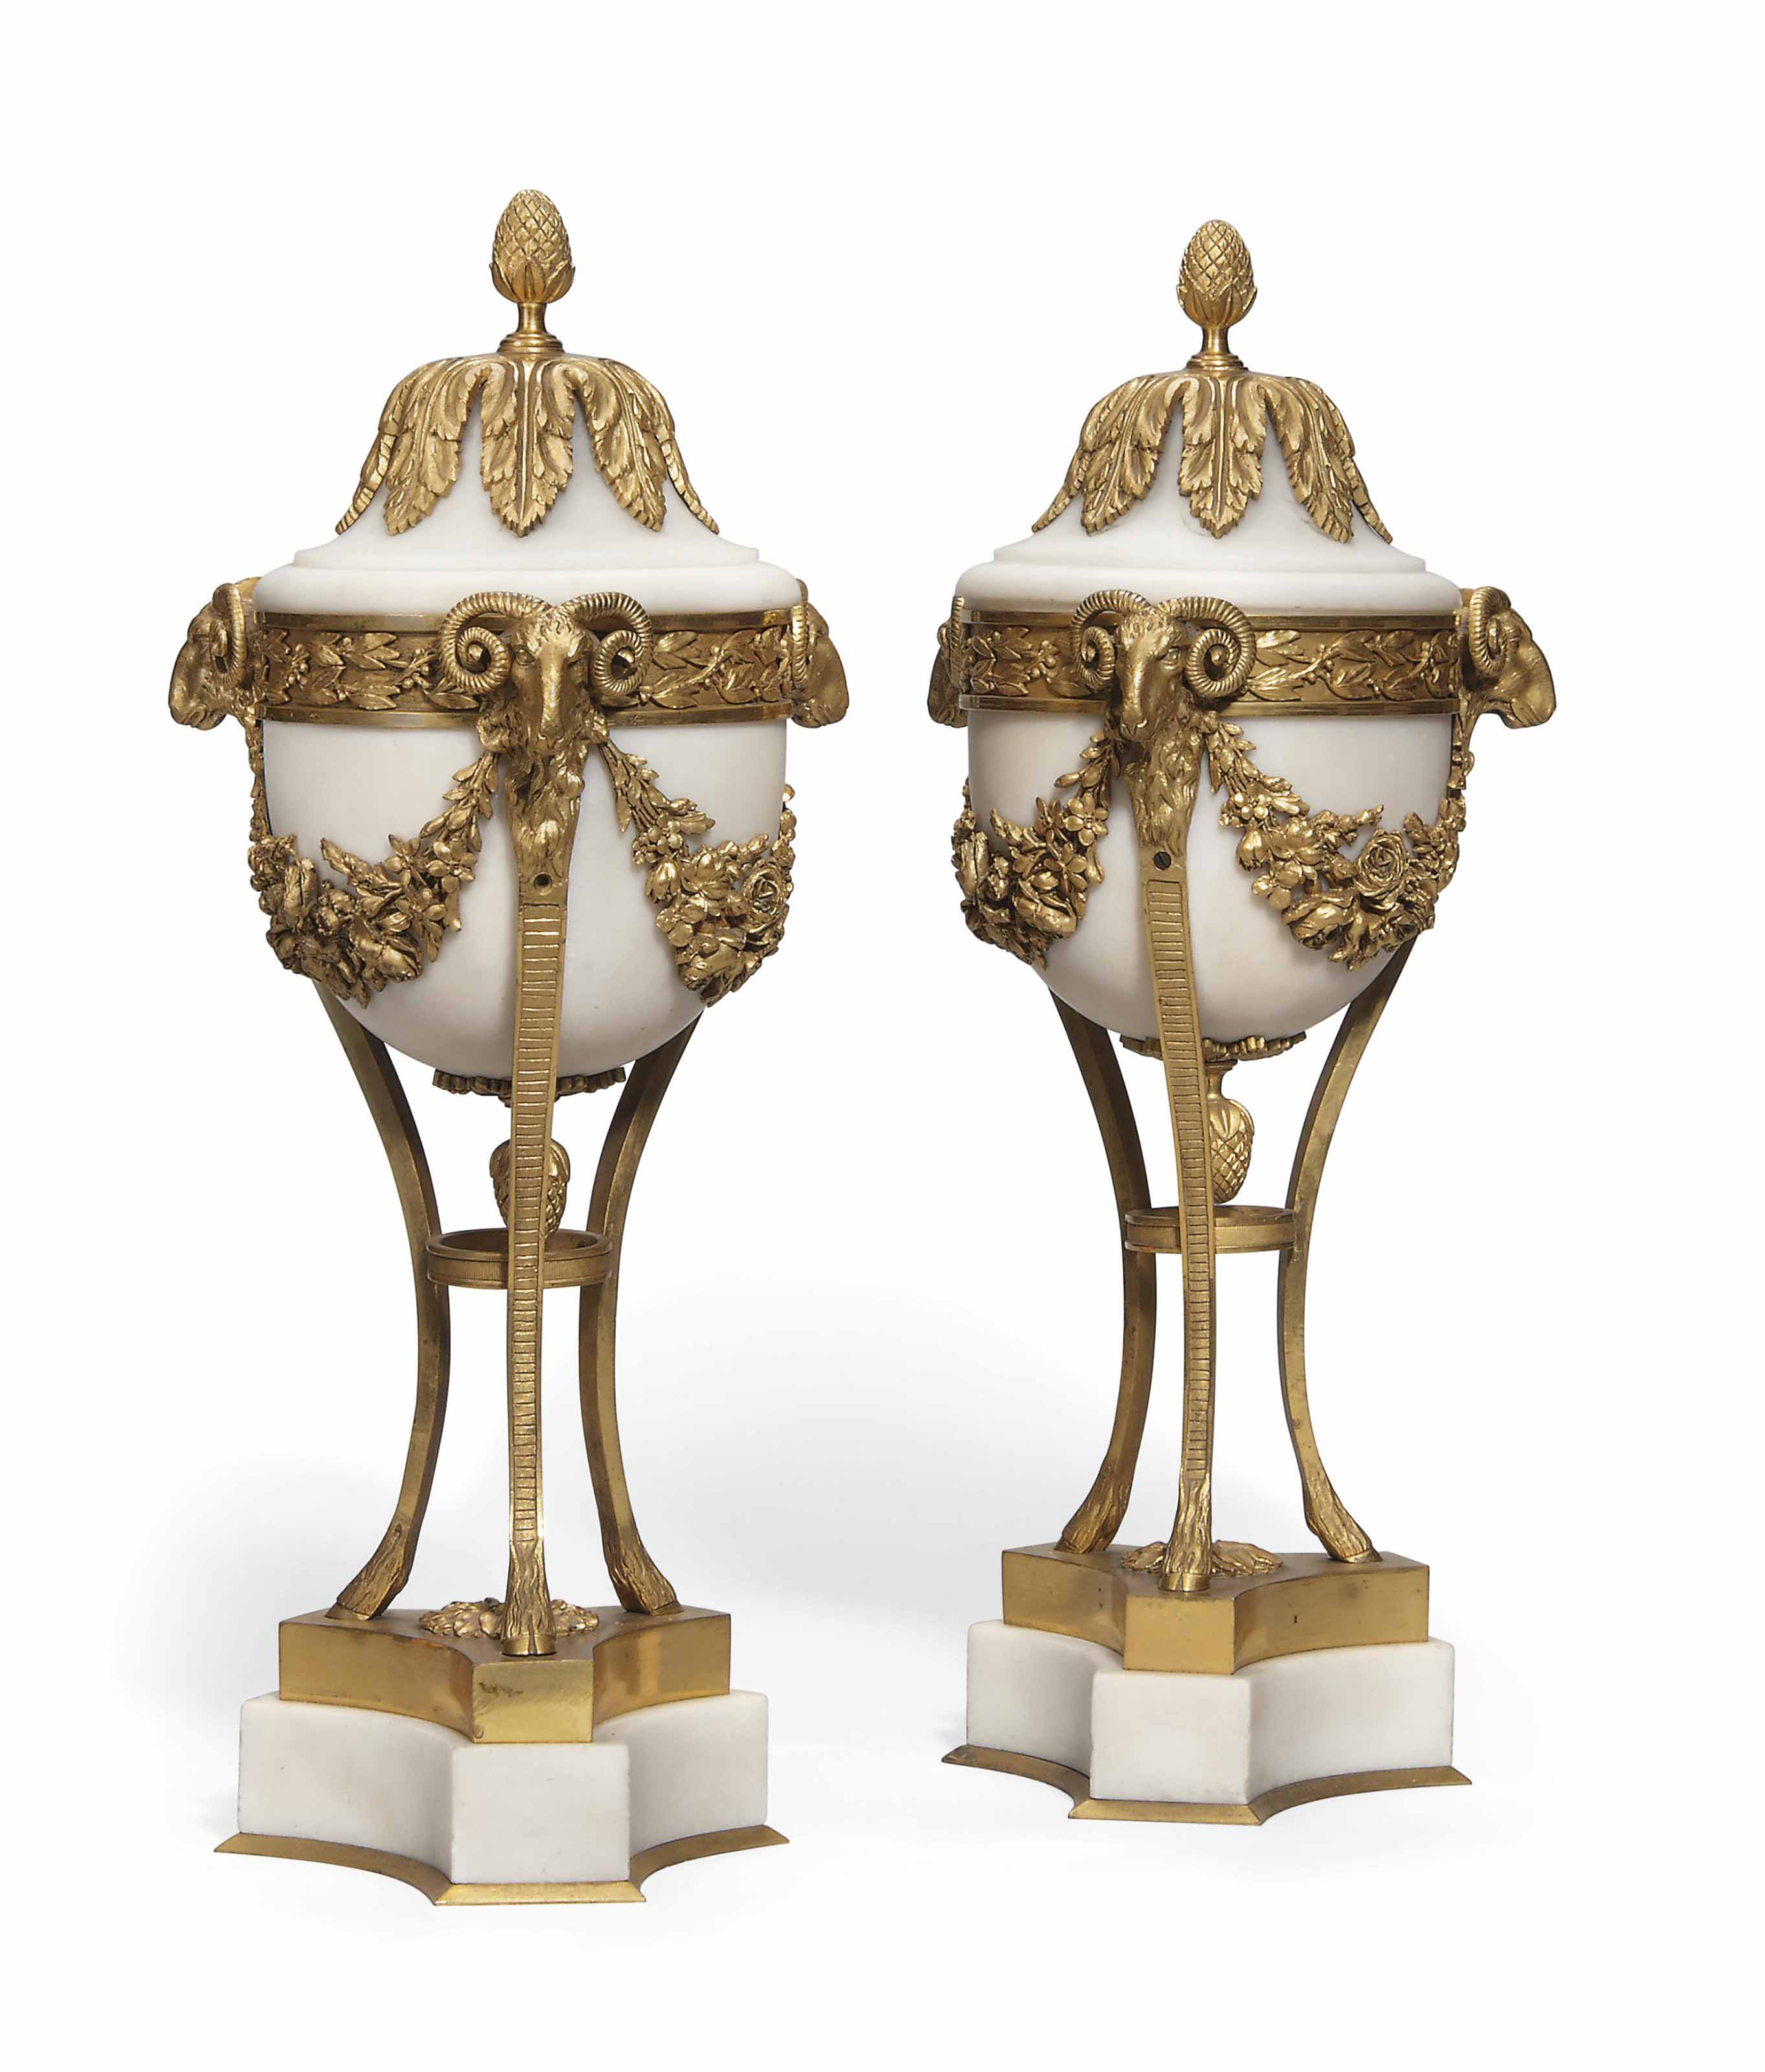 A PAIR OF FRENCH GILT-BRONZE M